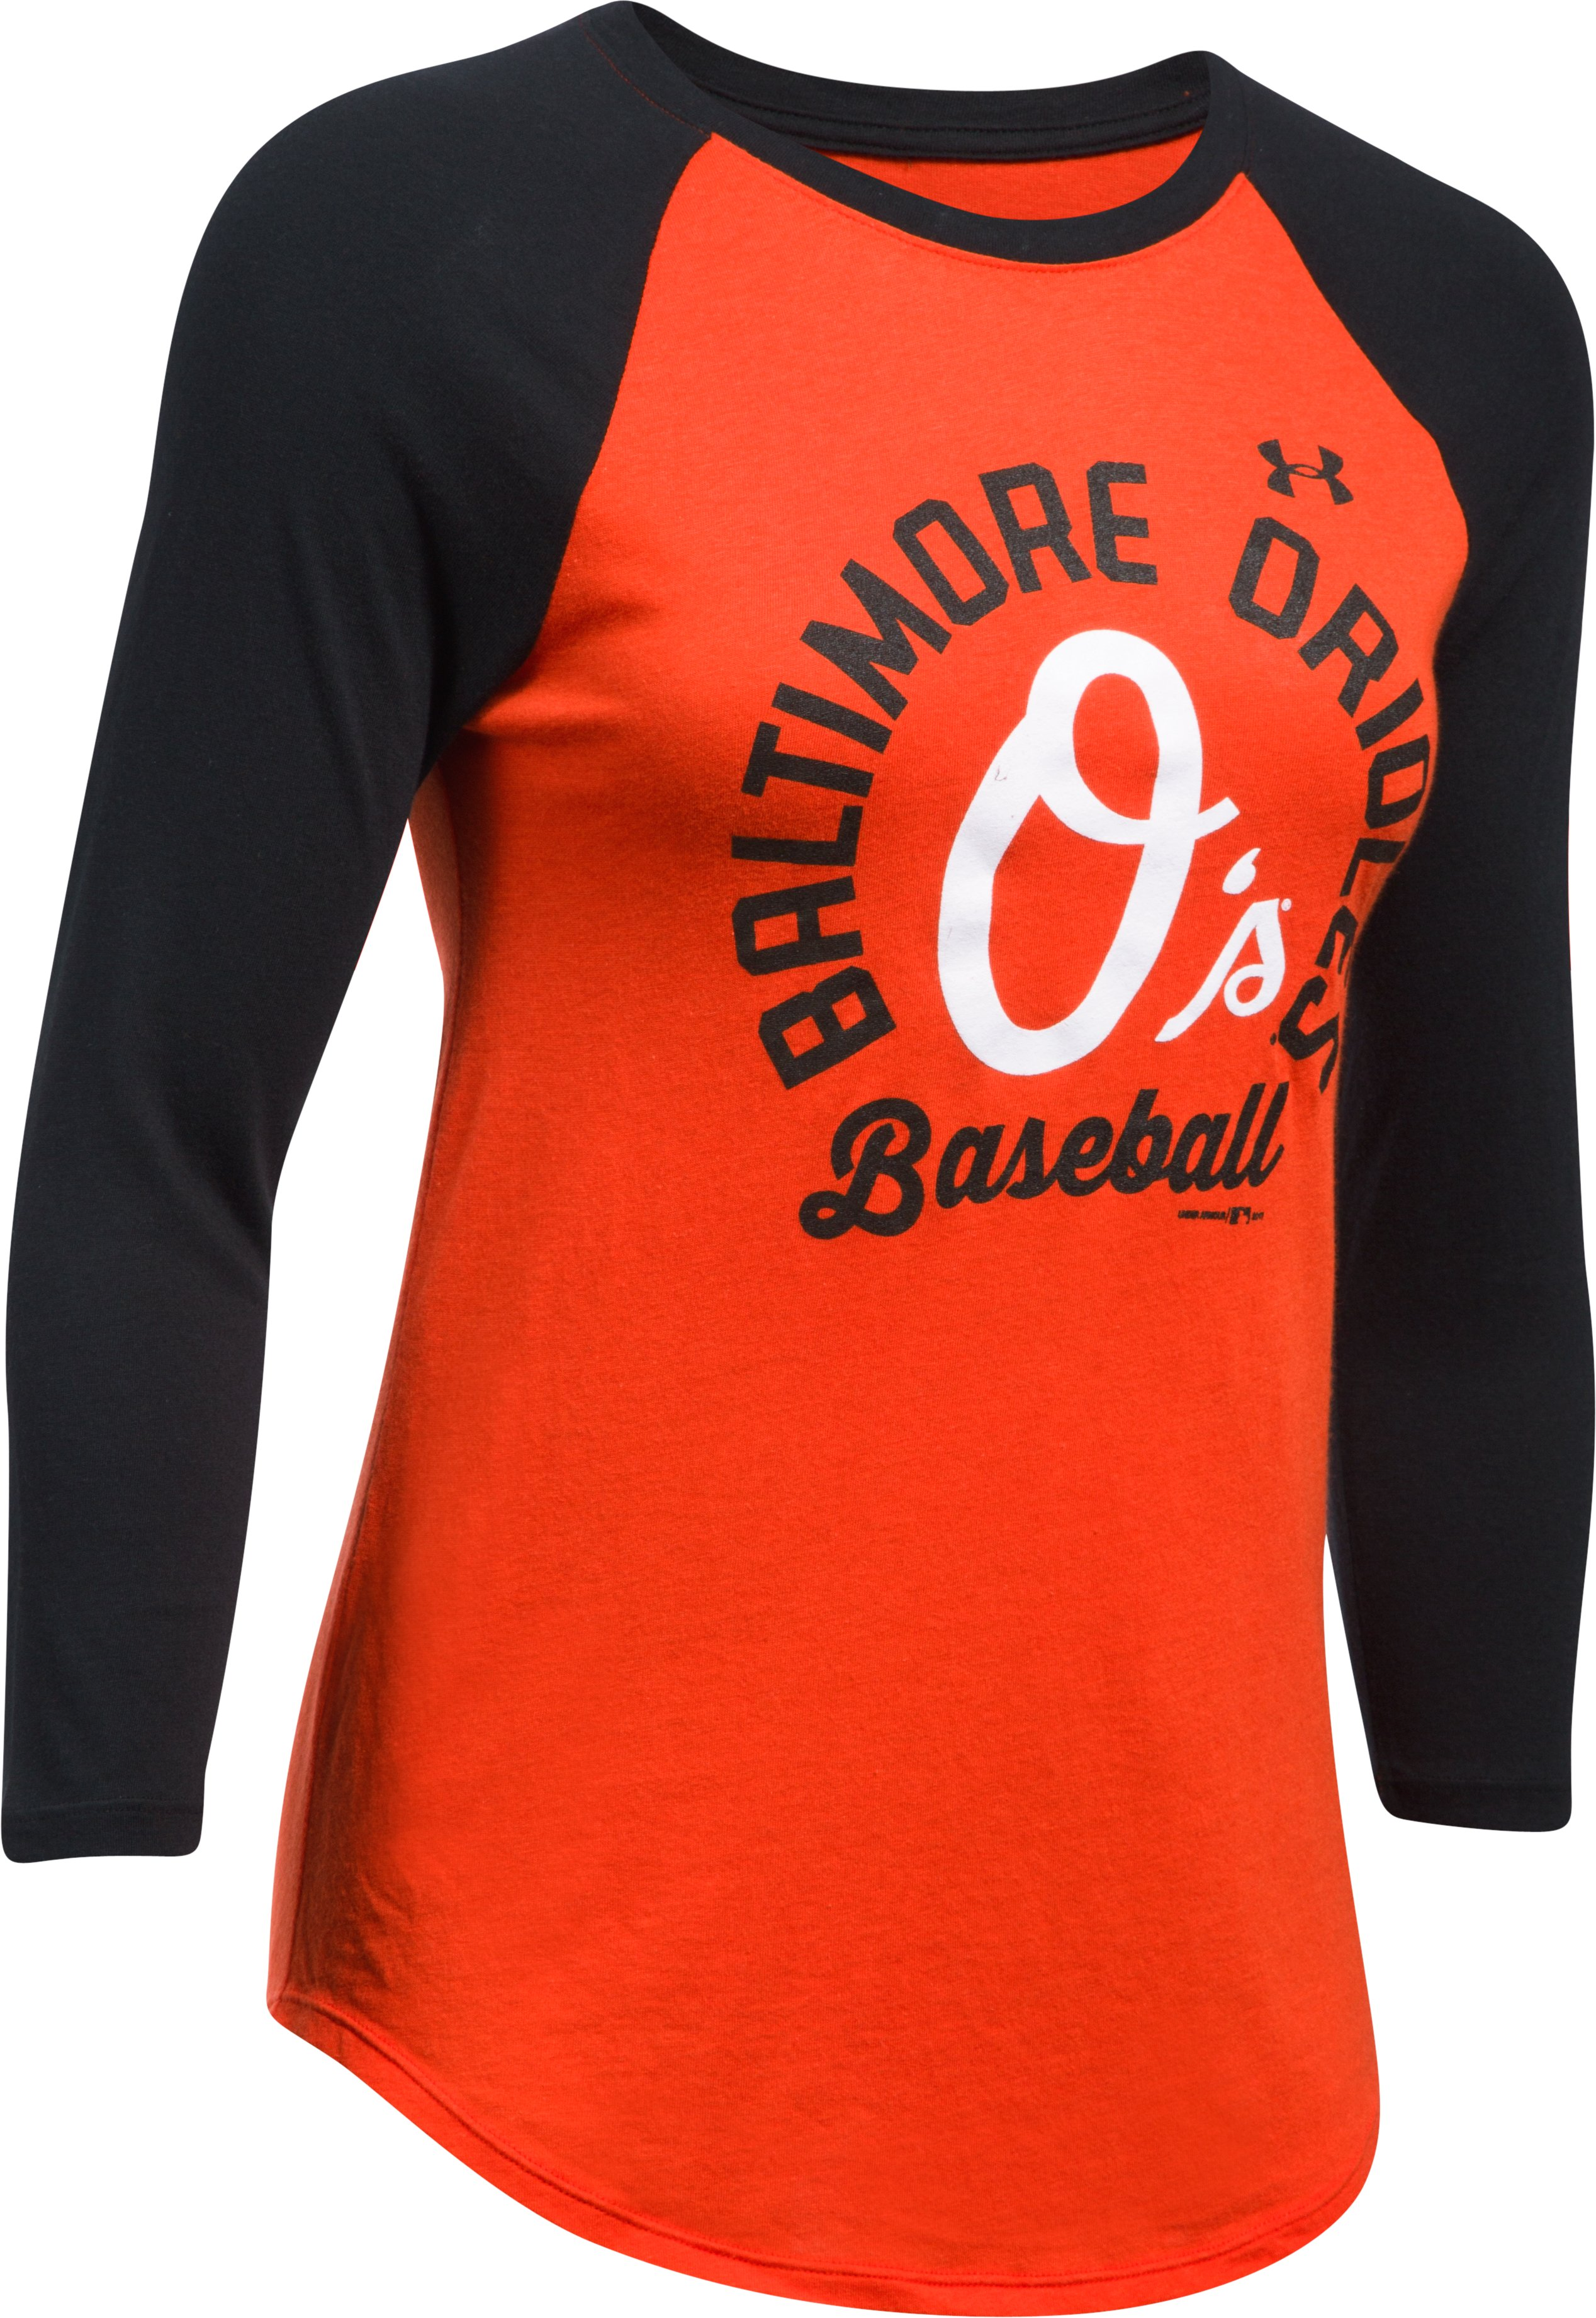 Women's Baltimore Orioles ¾ Sleeve T-Shirt, Dark Orange, undefined